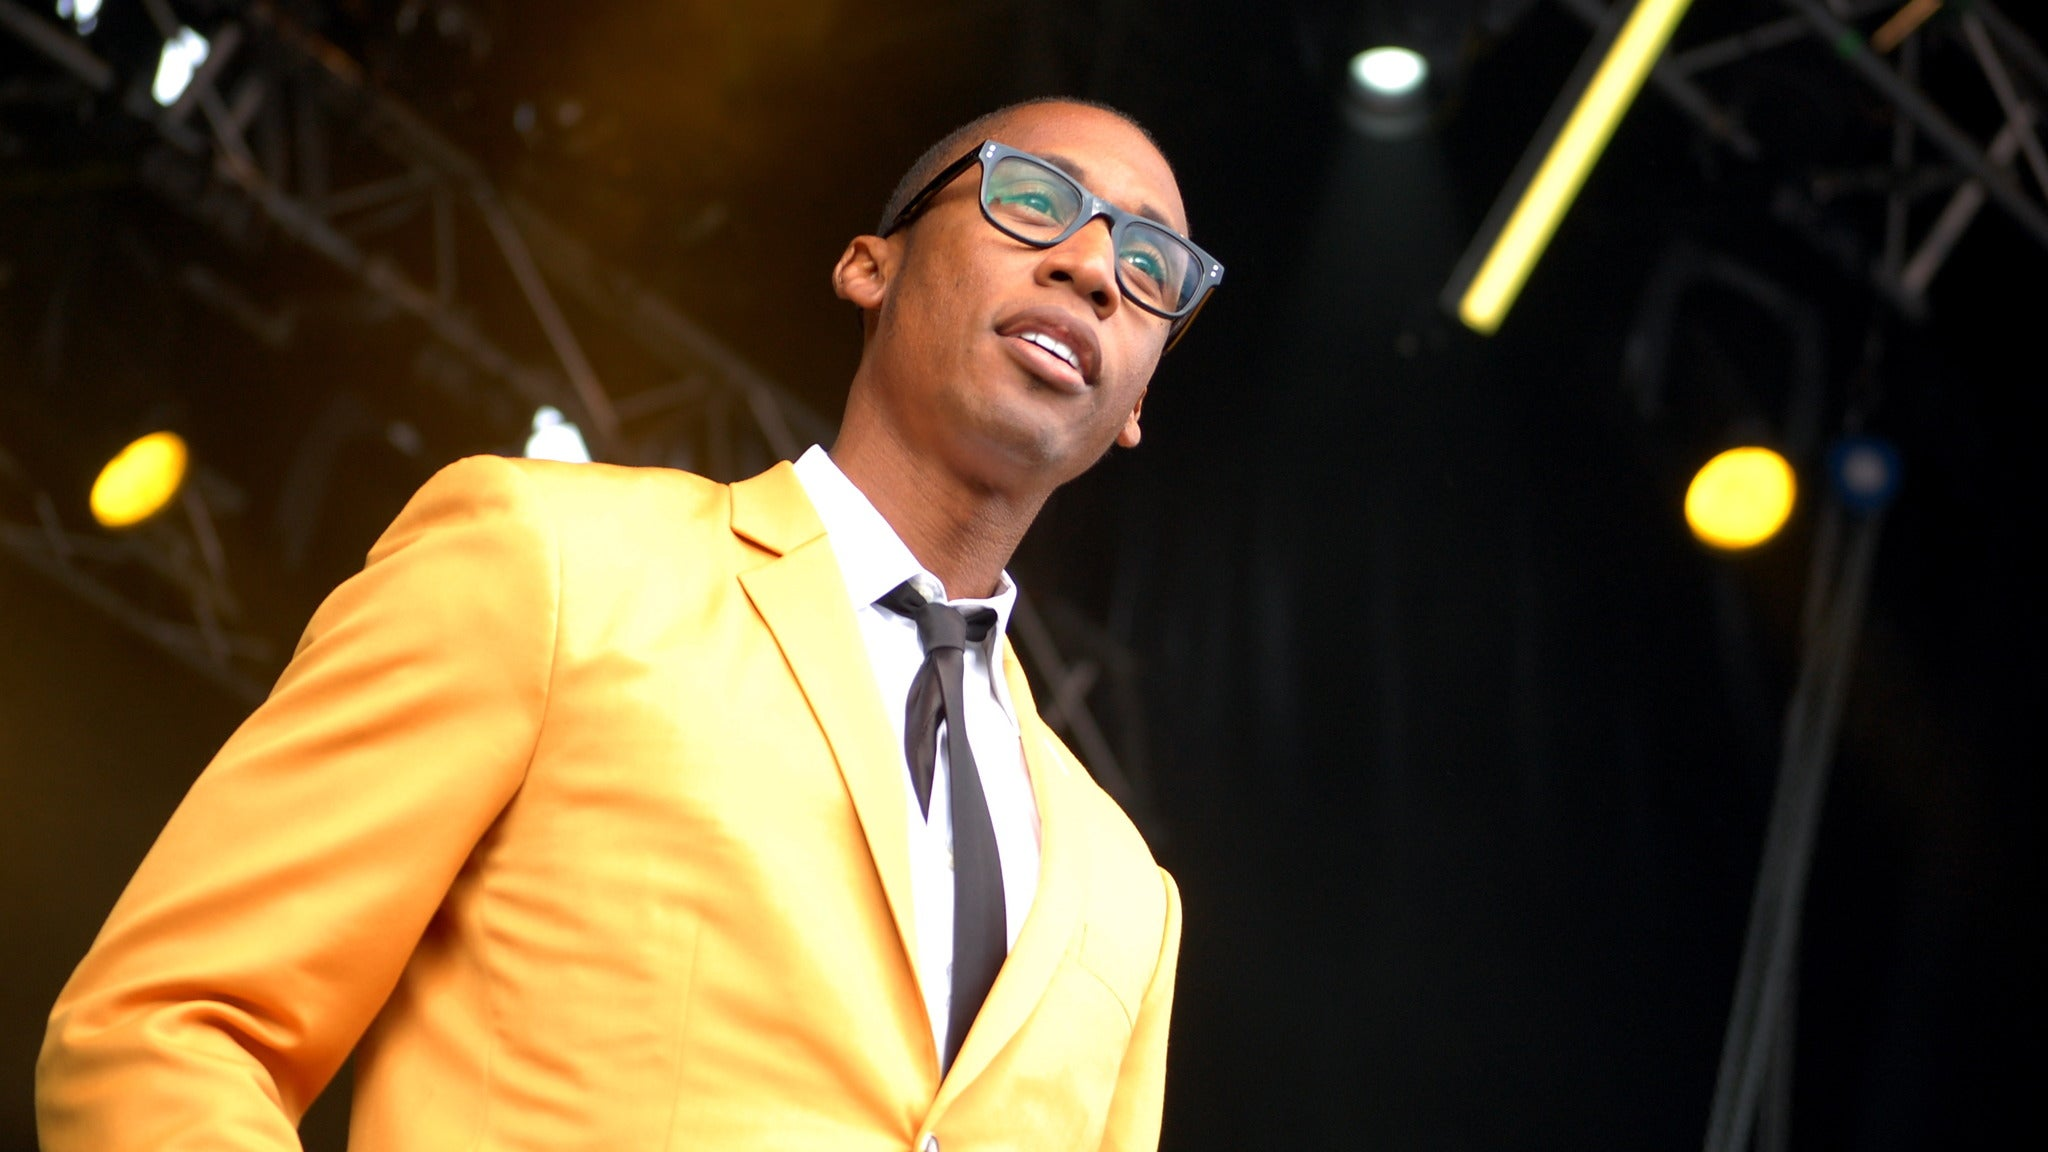 Raphael Saadiq at Kennedy Center - Concert Hall